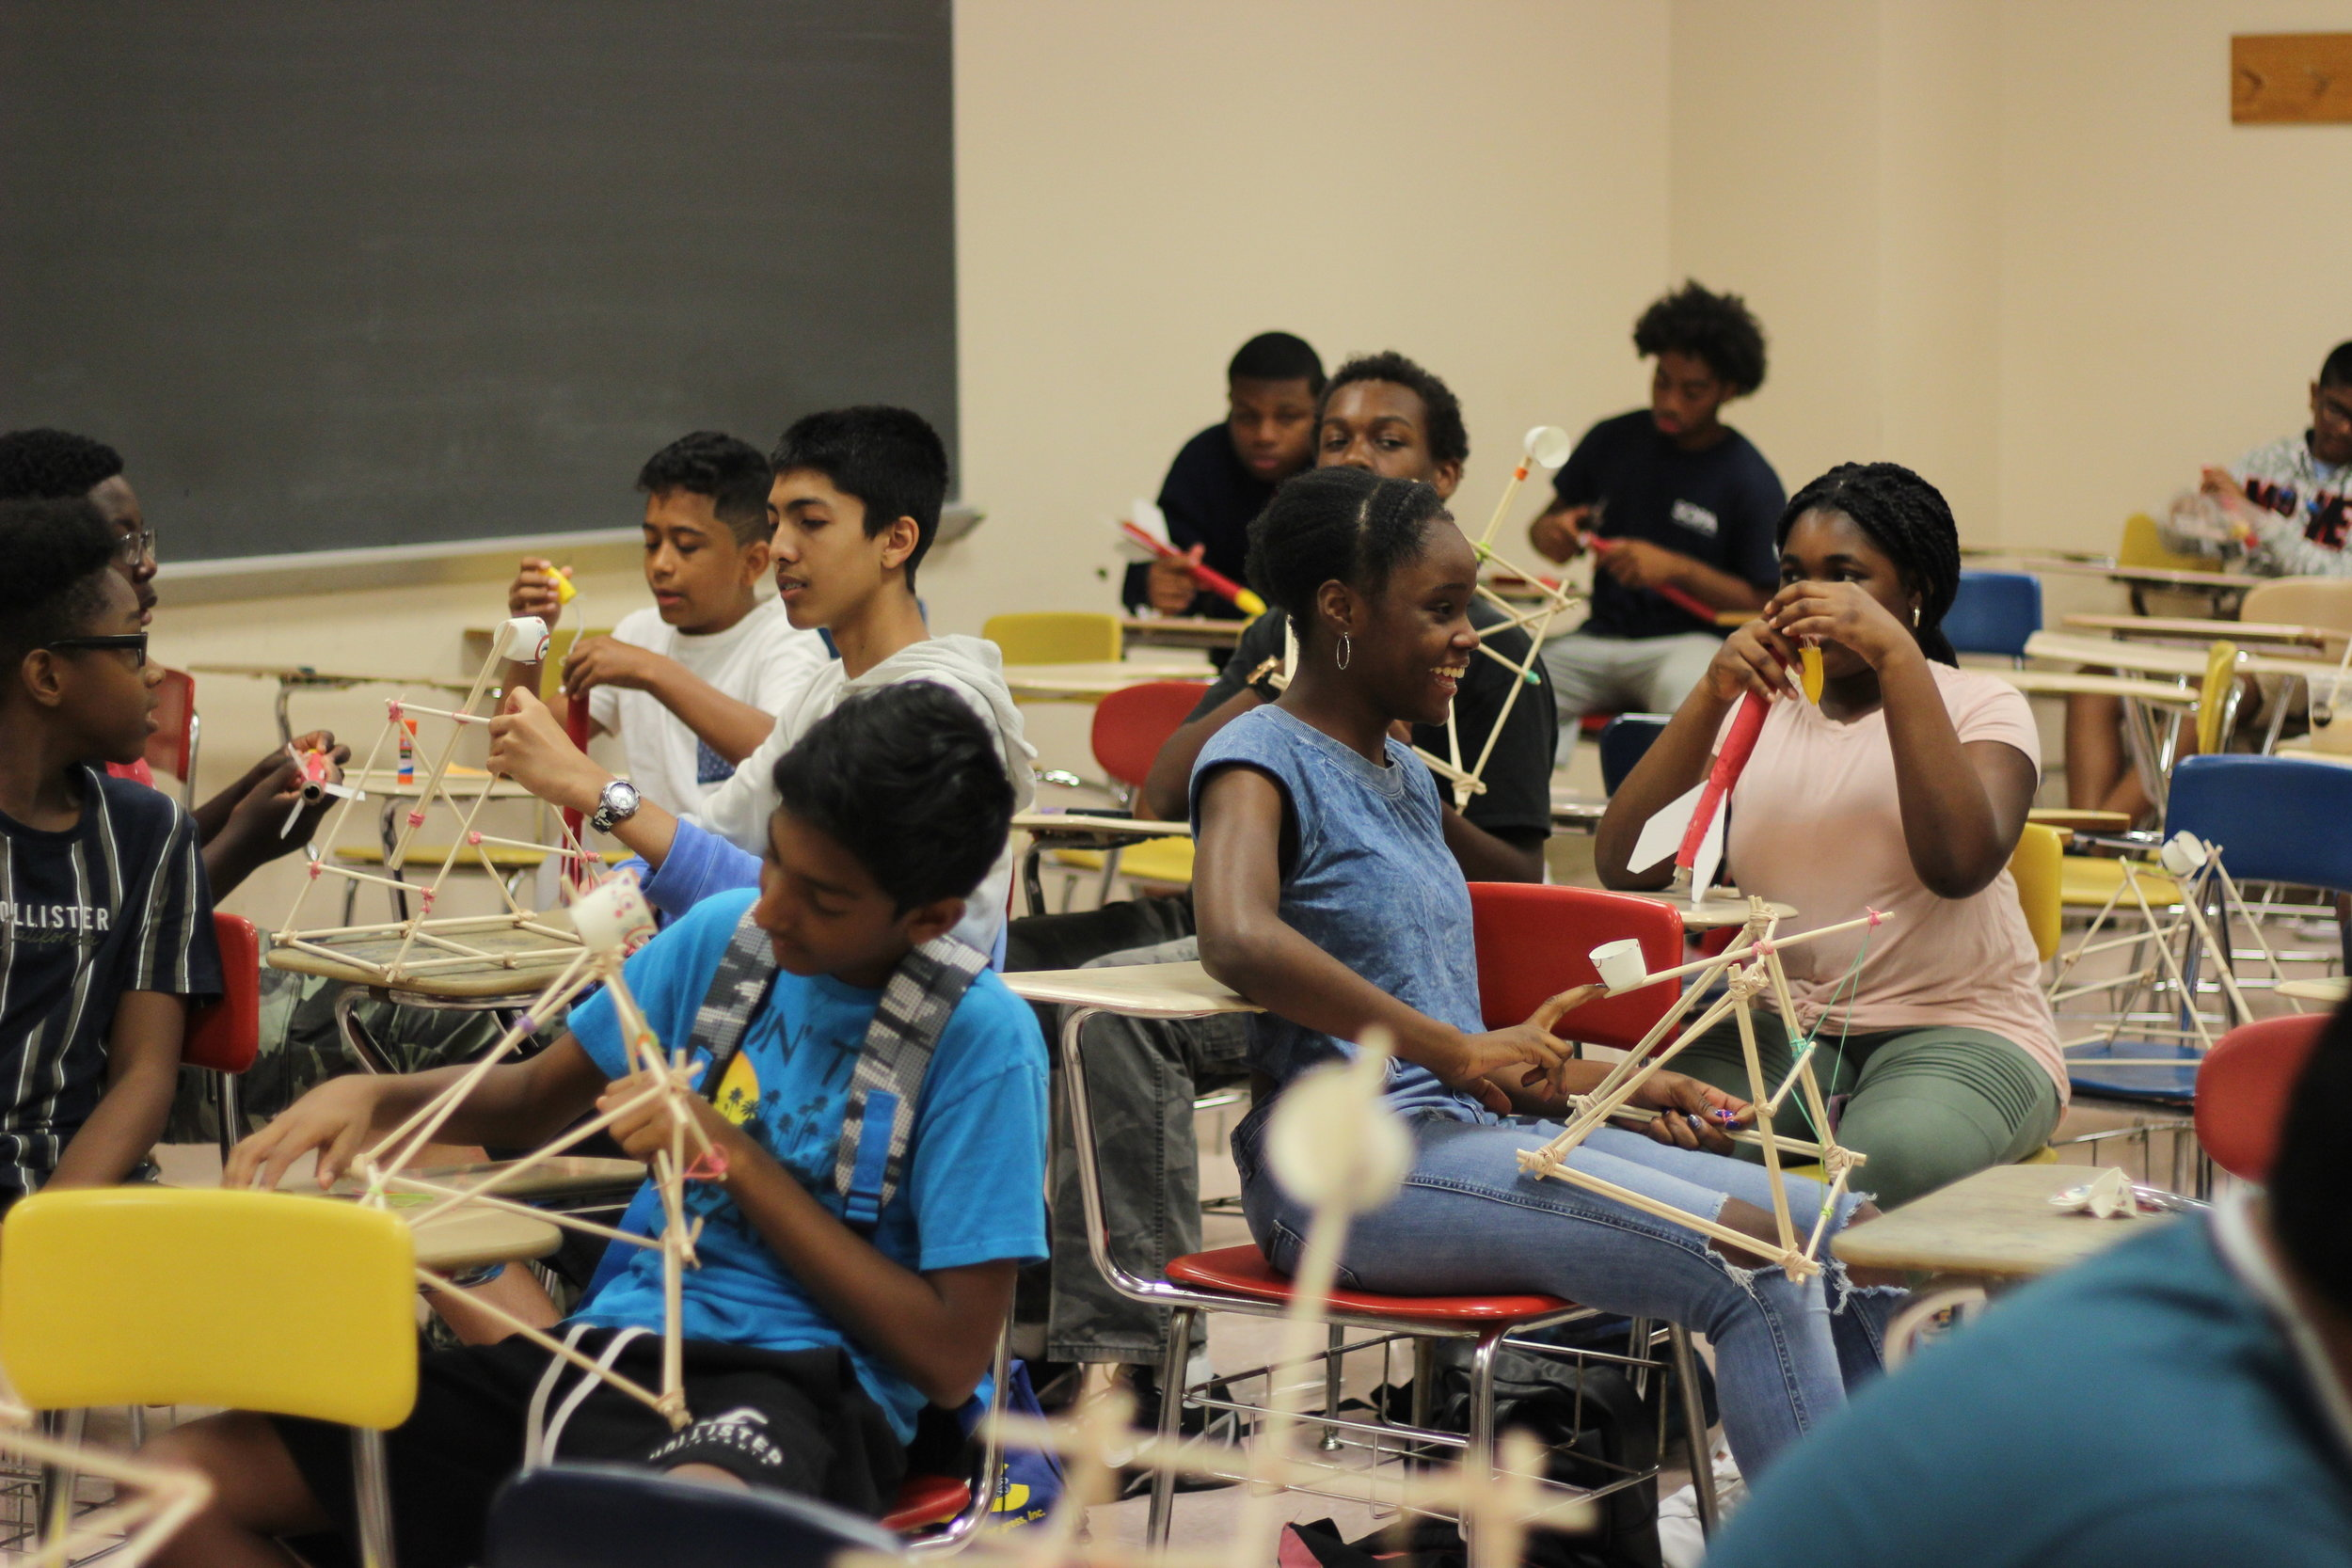 High schoolers learning about physics through building catapults.